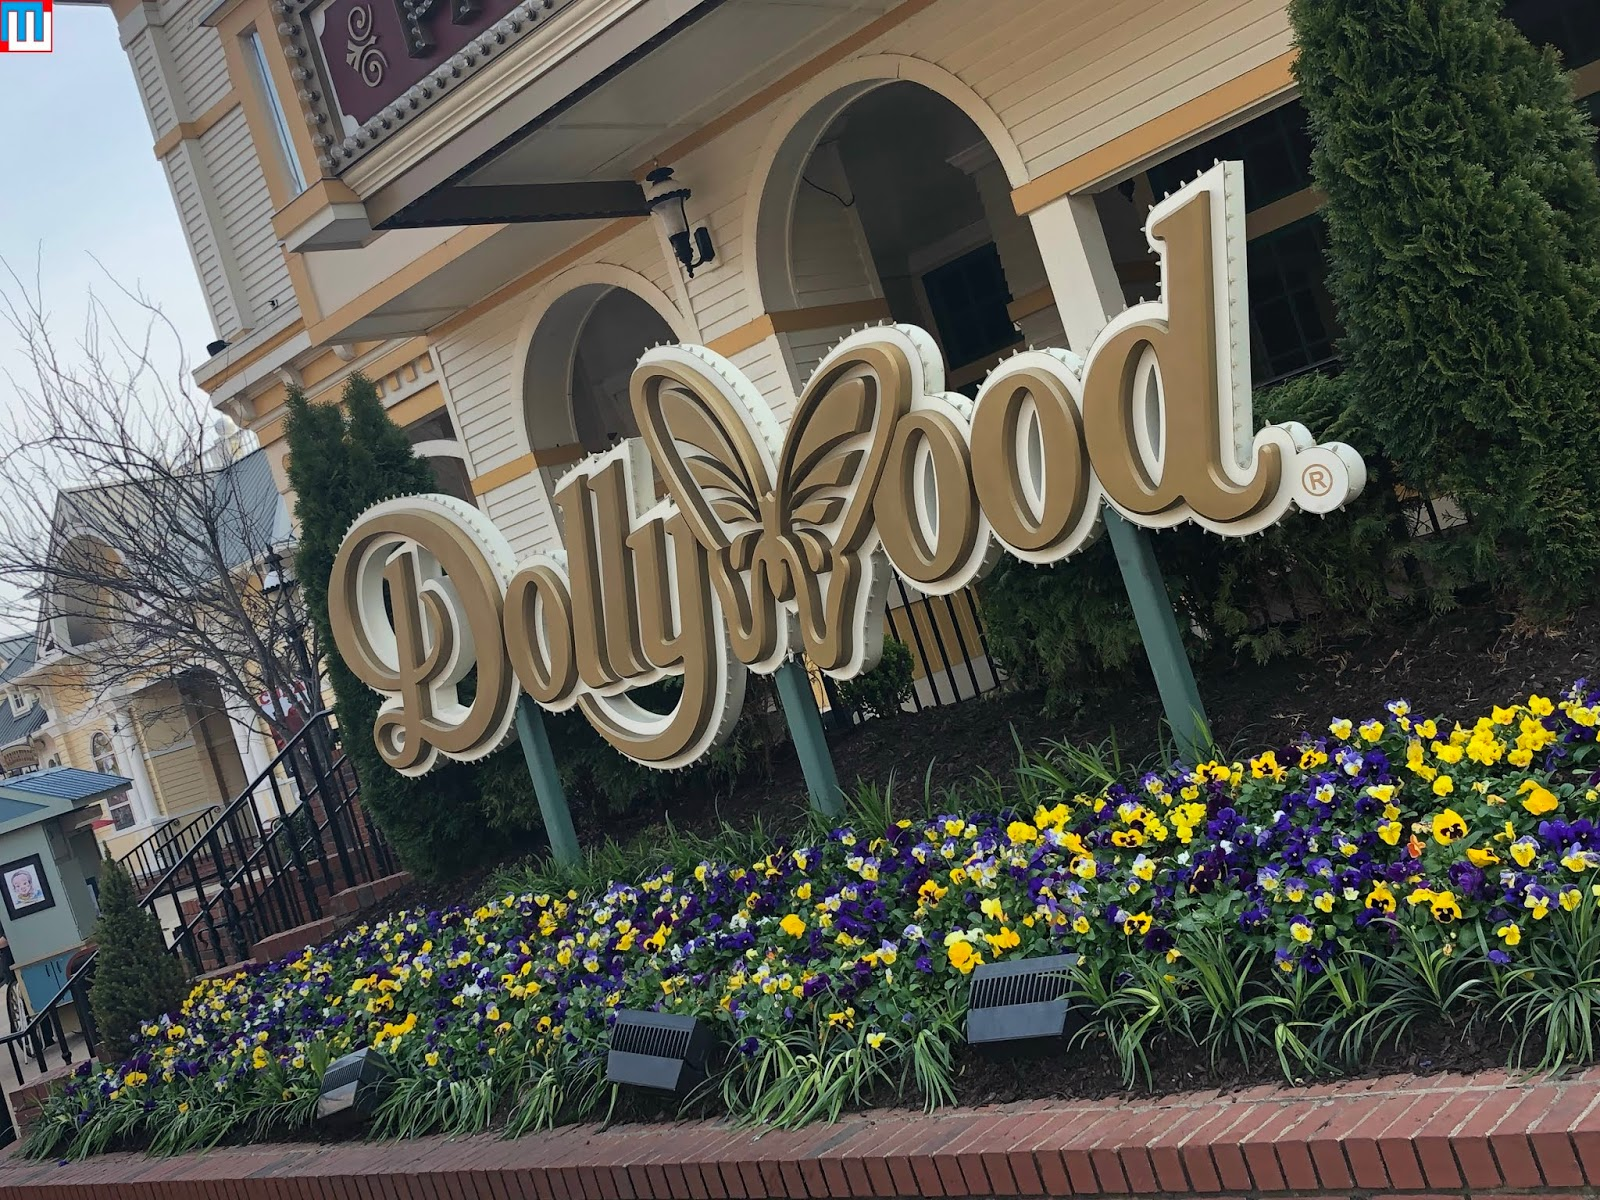 MidwestInfoGuide: Dollywood